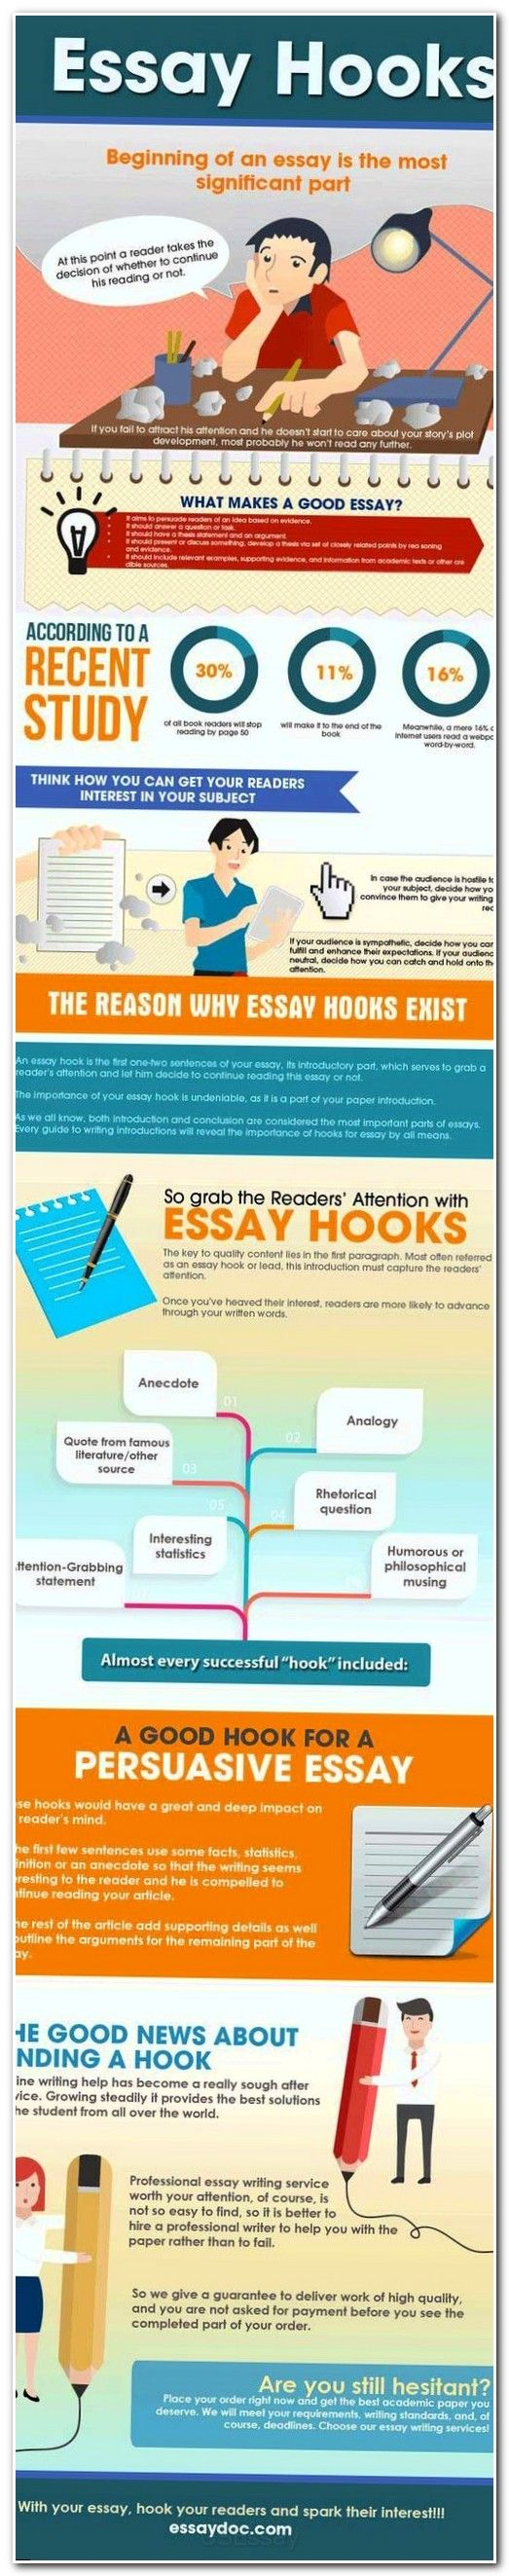 #essay #essayuniversity thesis writing help, persuasive paragraph writing, a short paragraph on education, fun writing exercises, creative writing year 11, why abortion should be illegal, tips on how to write a good essay, essay on argumentative topics, interesting topics for thesis paper, apa outline format, professional thesis, expository writing prompts elementary, methodology in dissertation example, communication assignment help, mla style essay sample